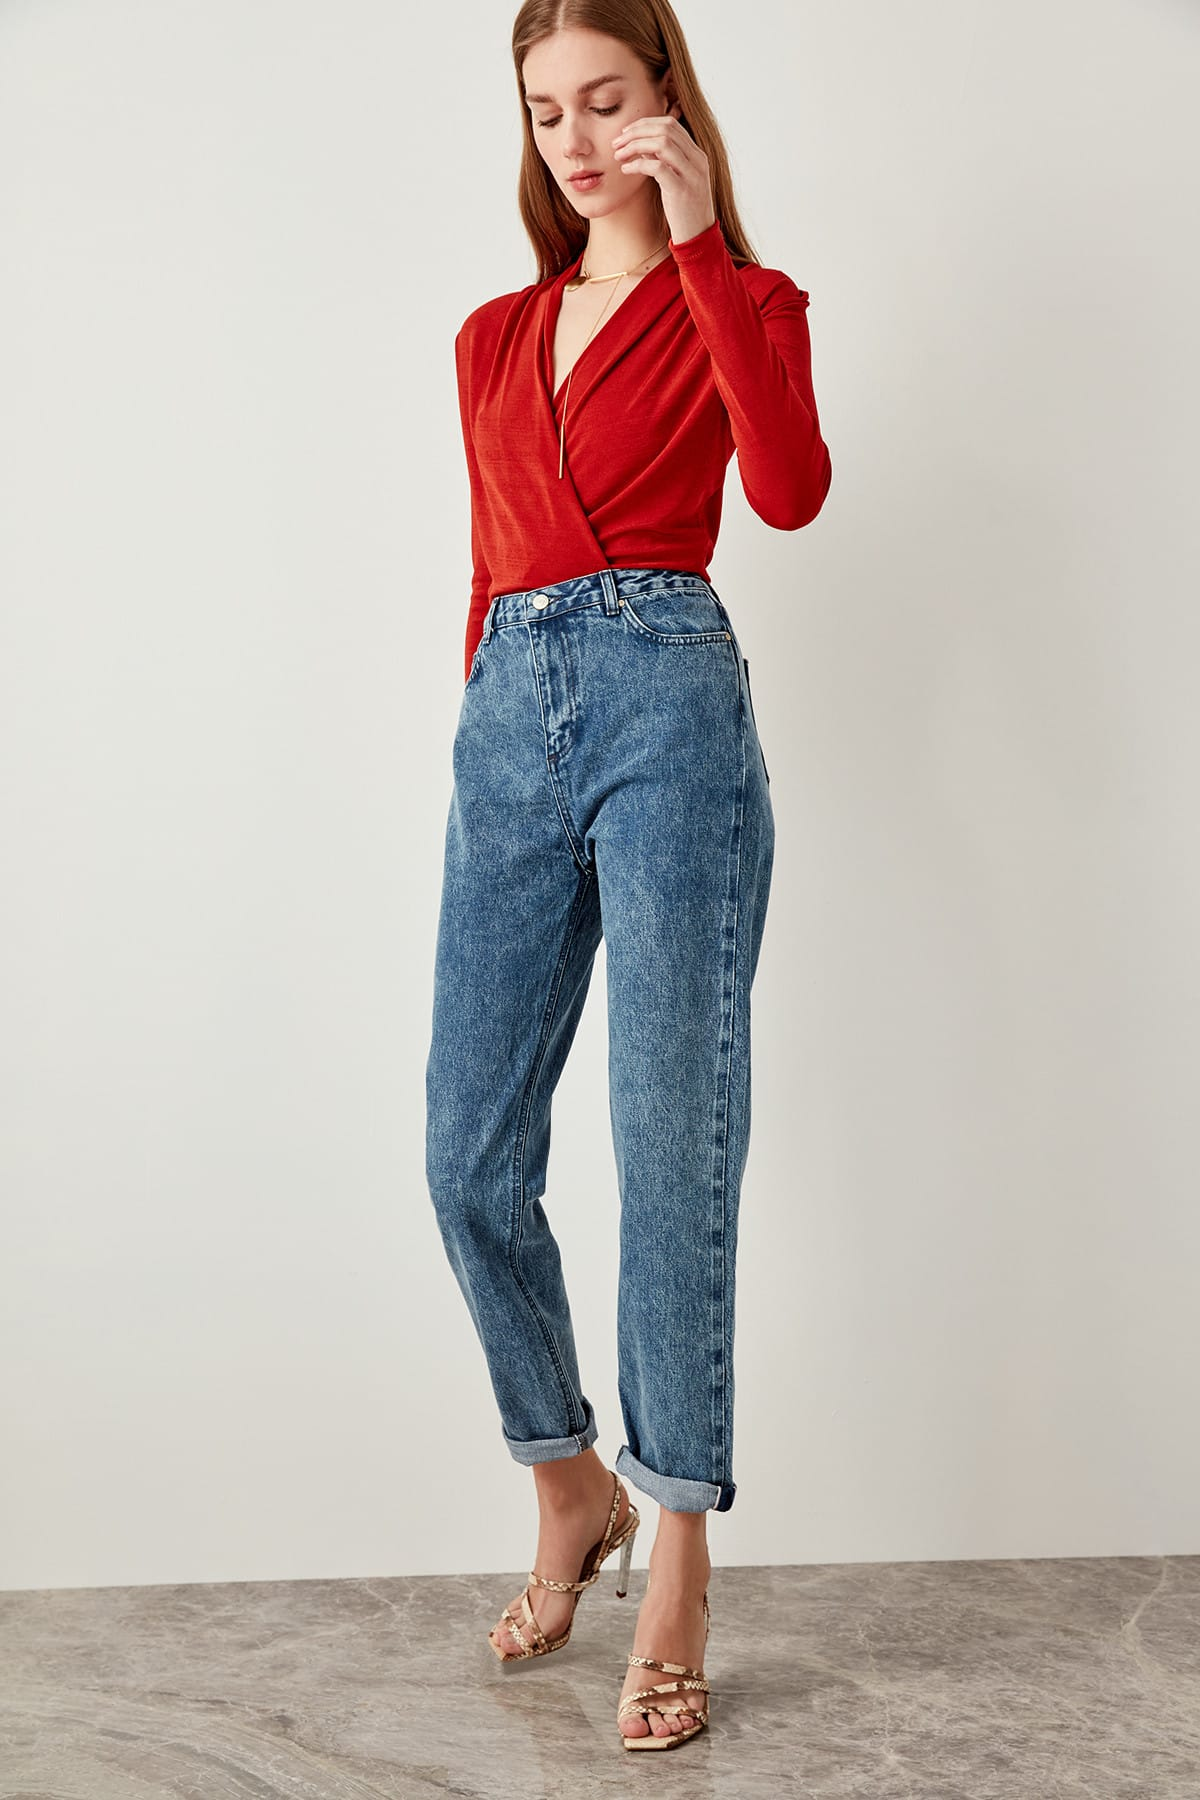 Trendyol Blue Wash-Effect High Waist Mom Jeans